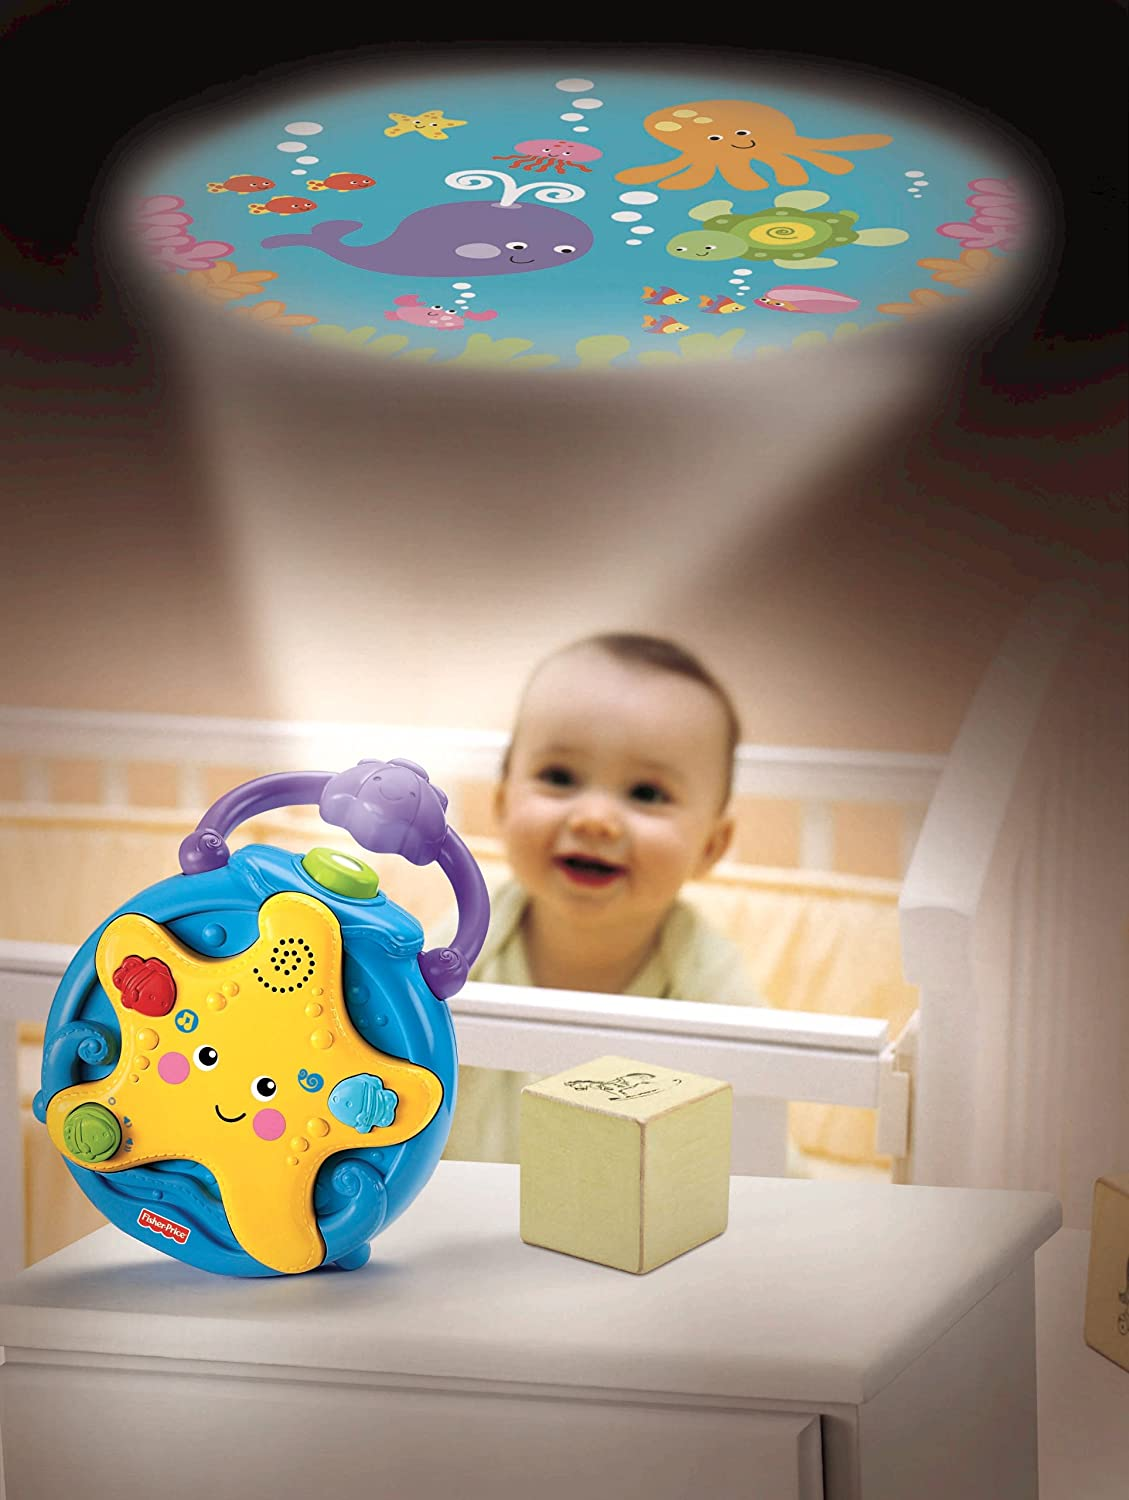 Fisher price ocean wonders take along projector soother amazon fisher price ocean wonders take along projector soother amazon baby mozeypictures Image collections